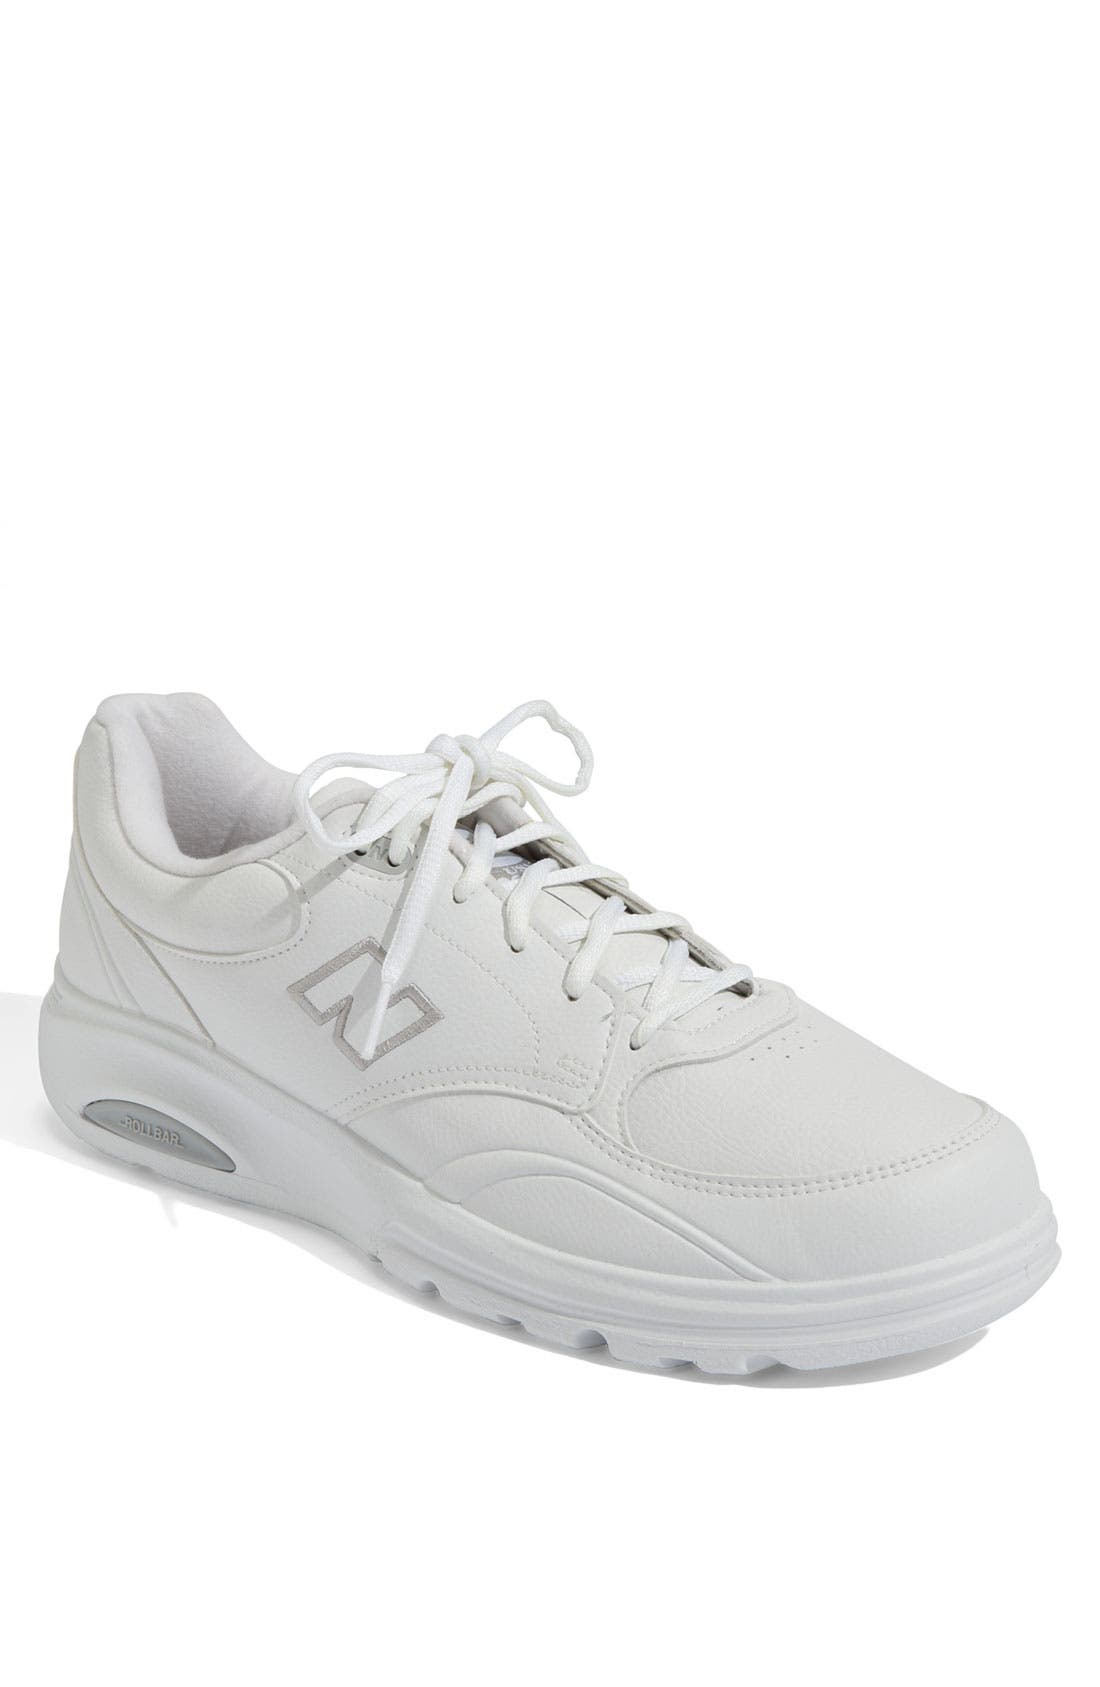 Alternate Image 1 Selected - New Balance '812' Walking Shoe (Men)